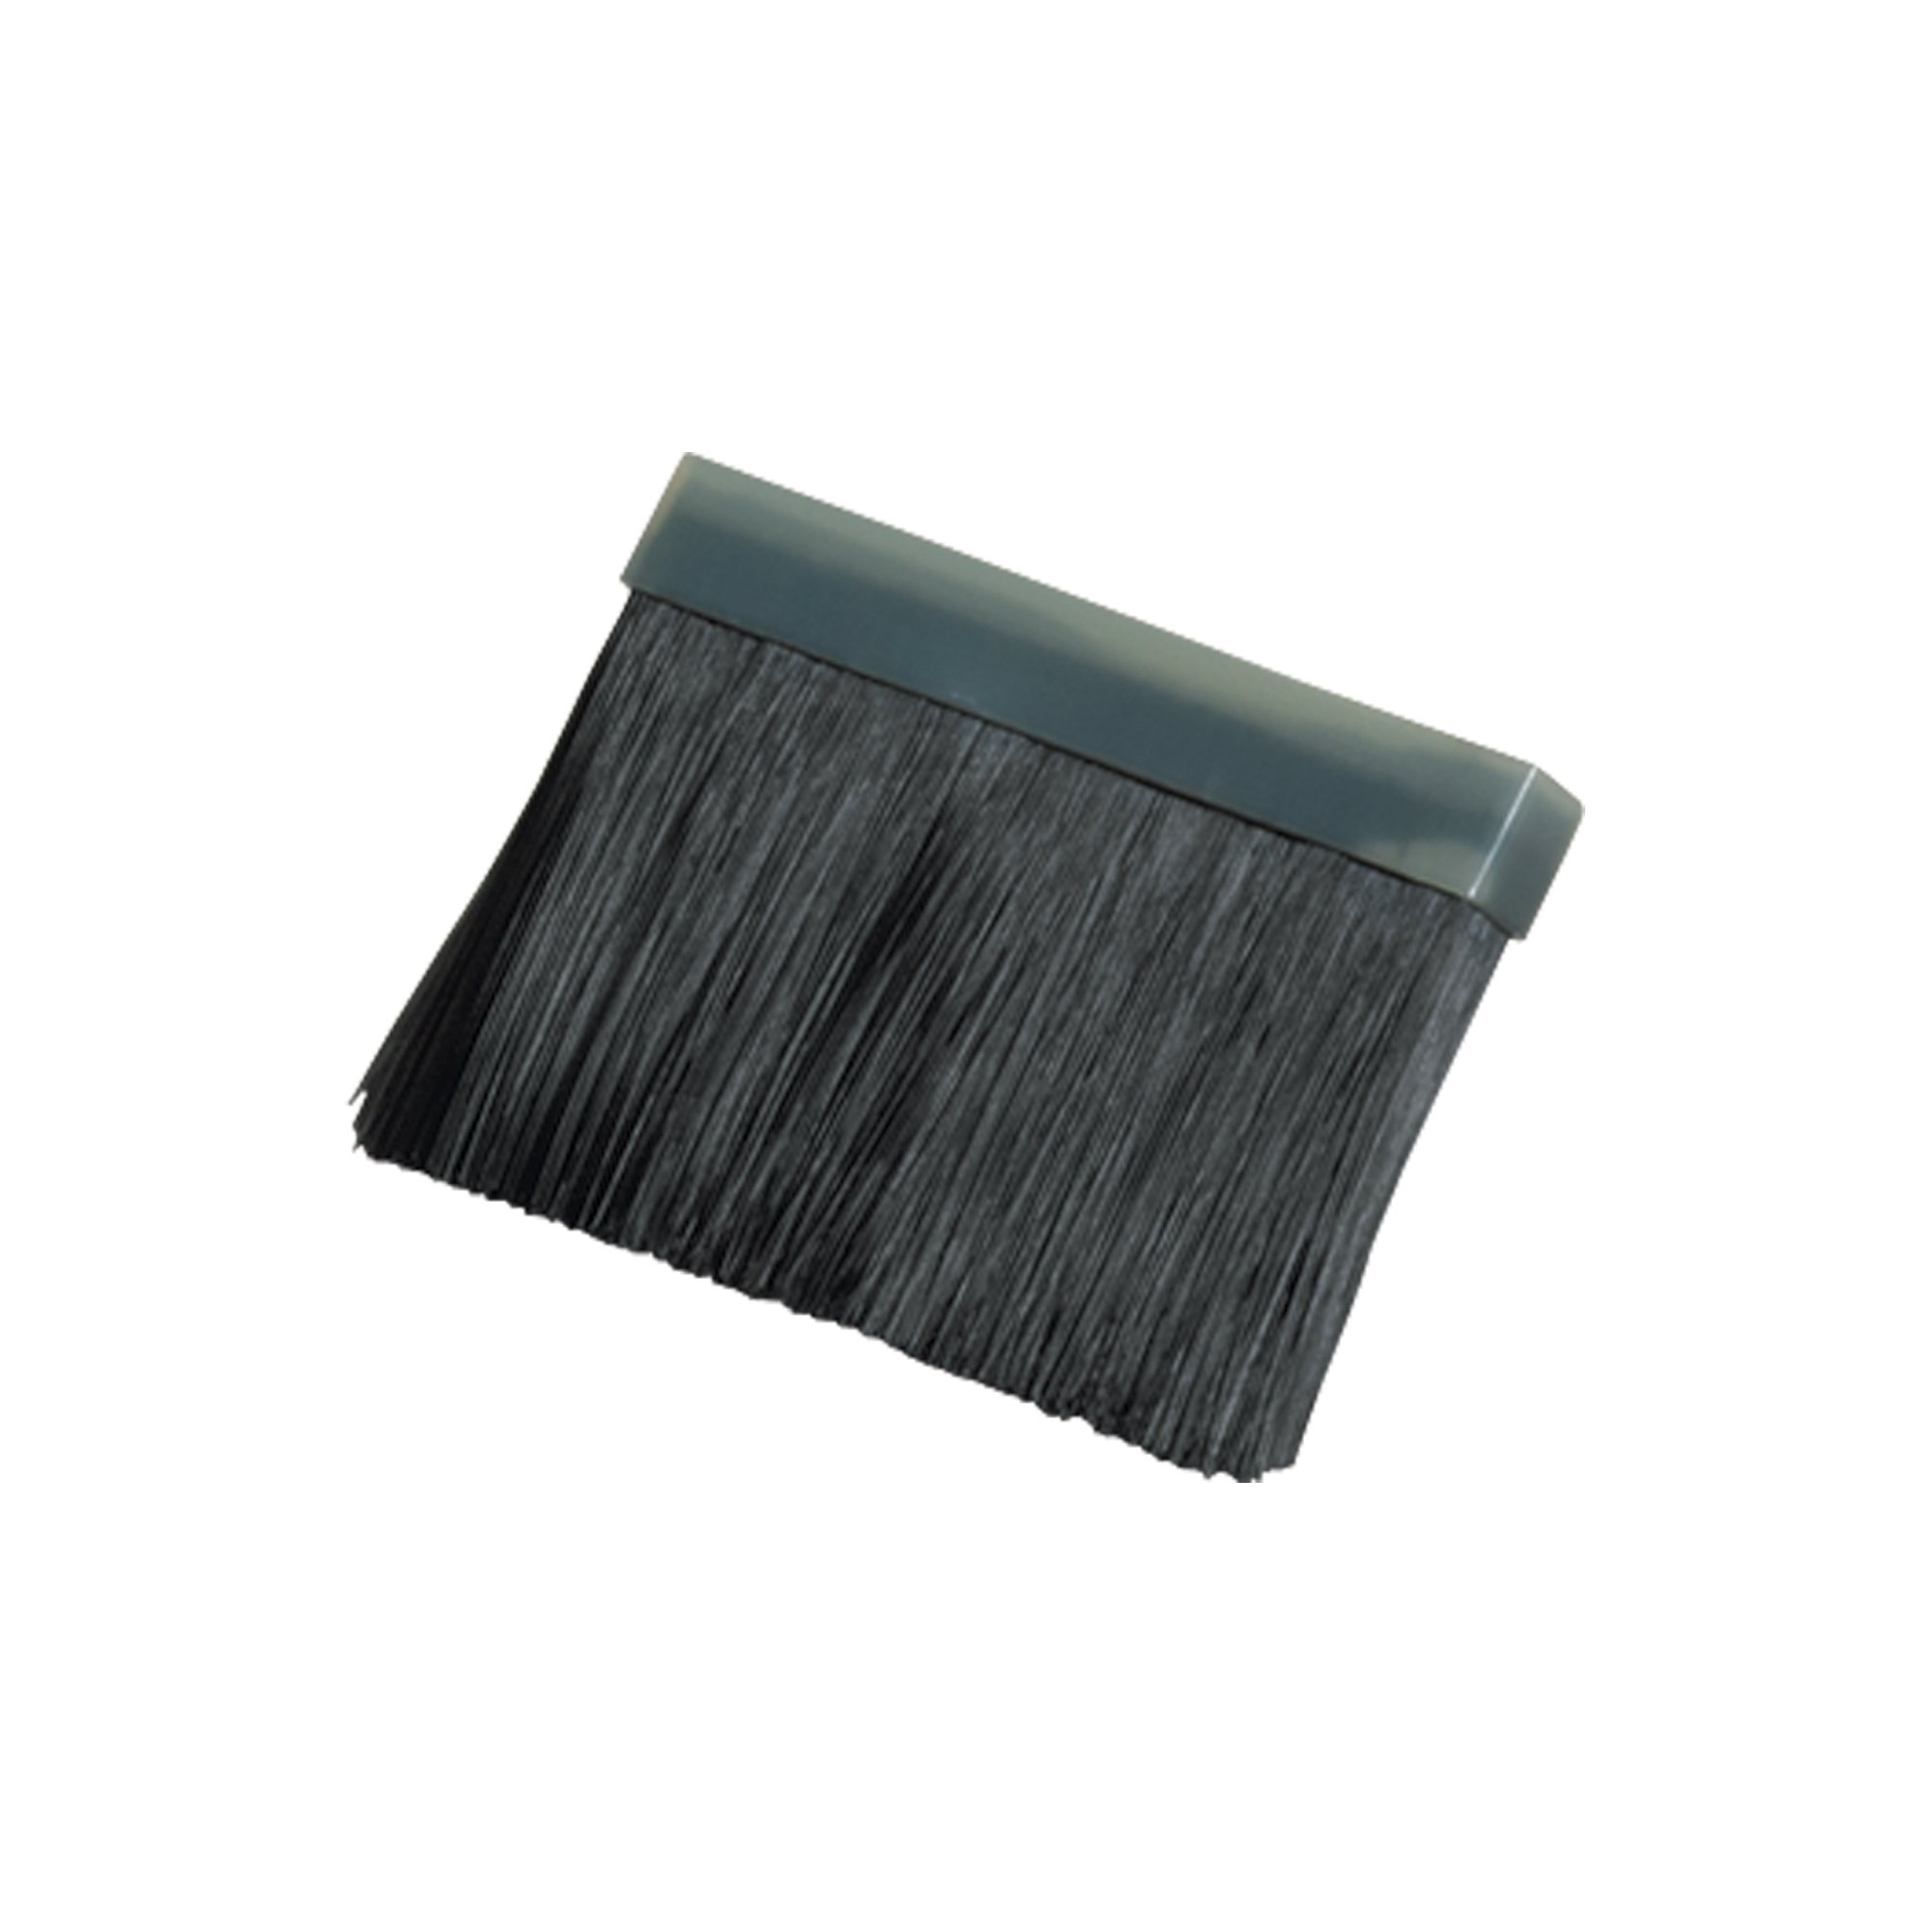 Boxes Fast Better Pack 555e Series Replacement Brush, Black, (Pack of 2) by Boxes Fast